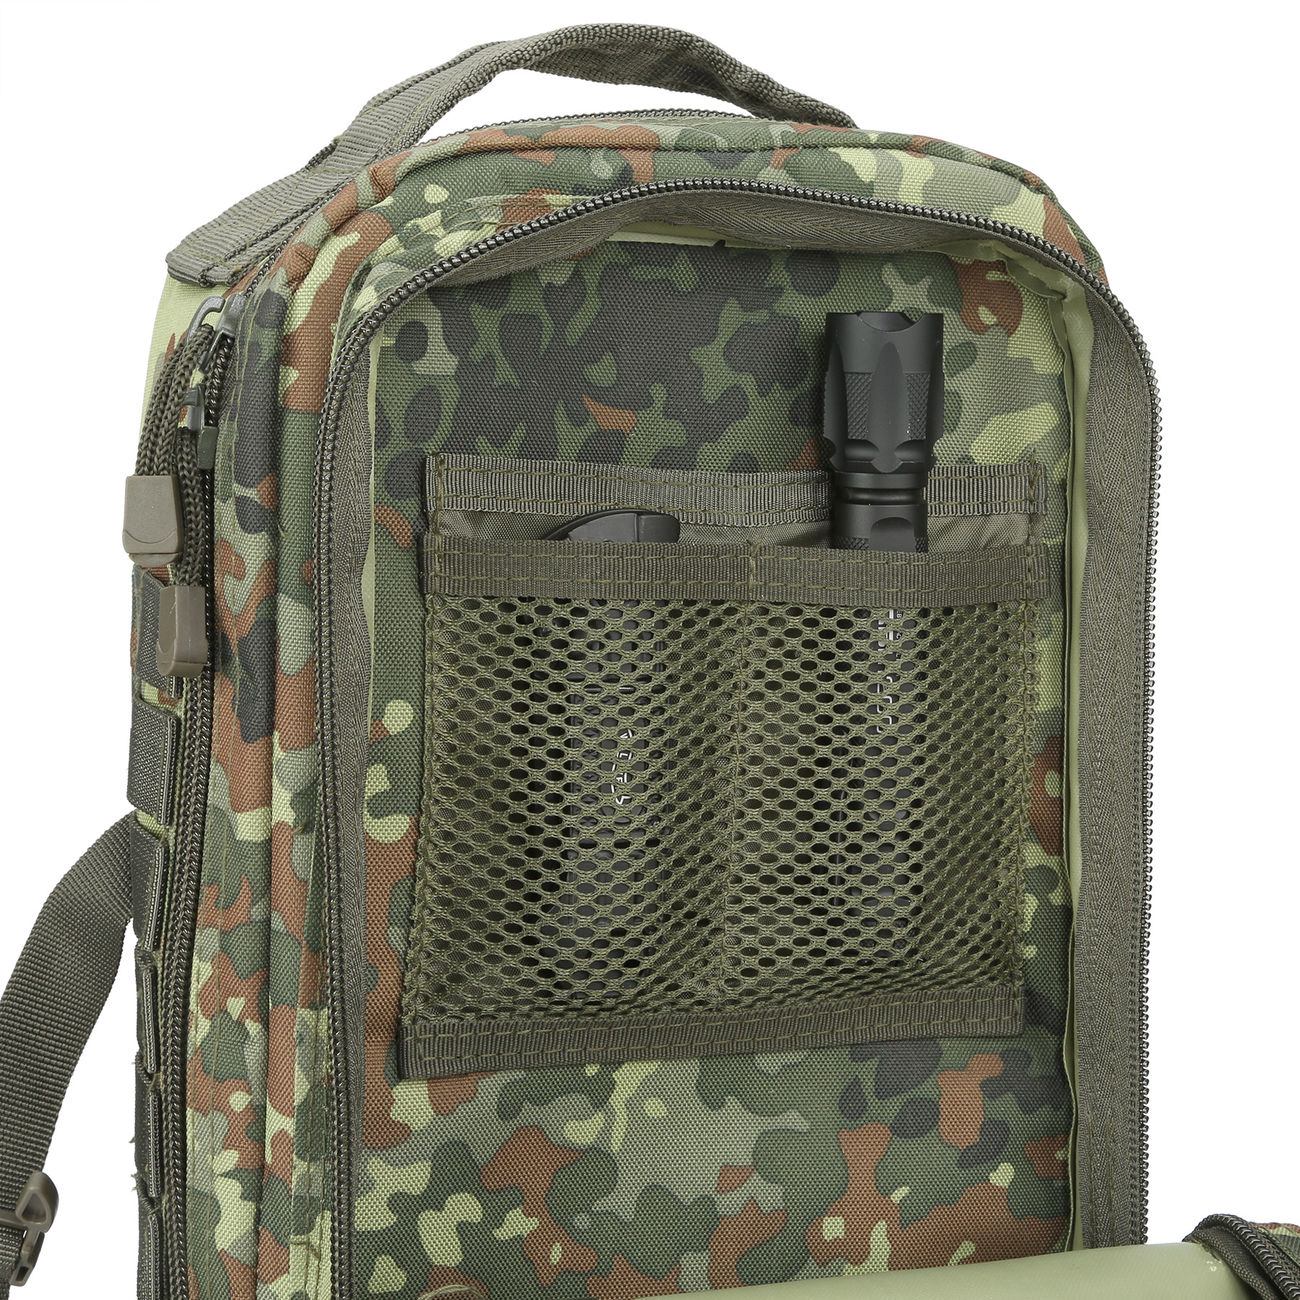 MFH Rucksack US Assault flecktarn 8